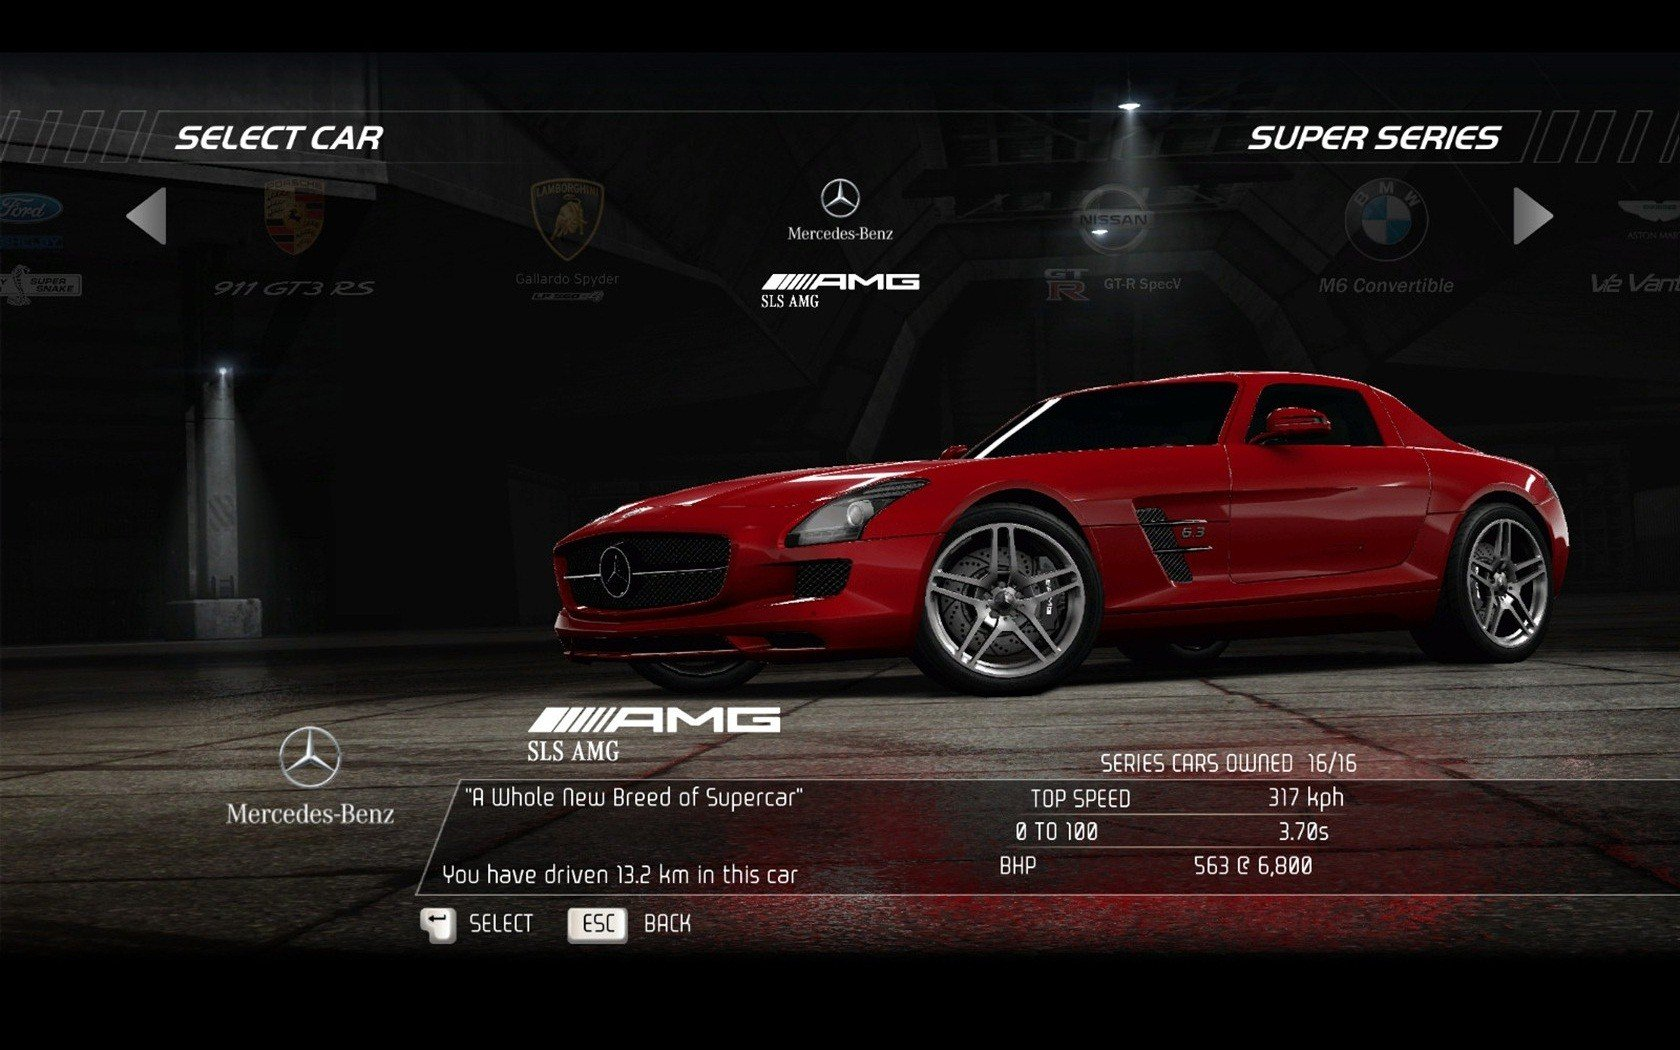 Video games cars need for speed hot pursuit mercedes benz for Mercedes benz games